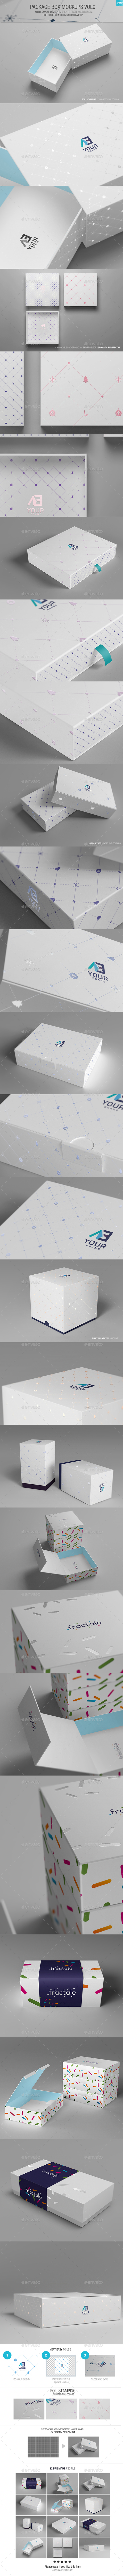 Package Box Mockups Vol9 - Packaging Product Mock-Ups